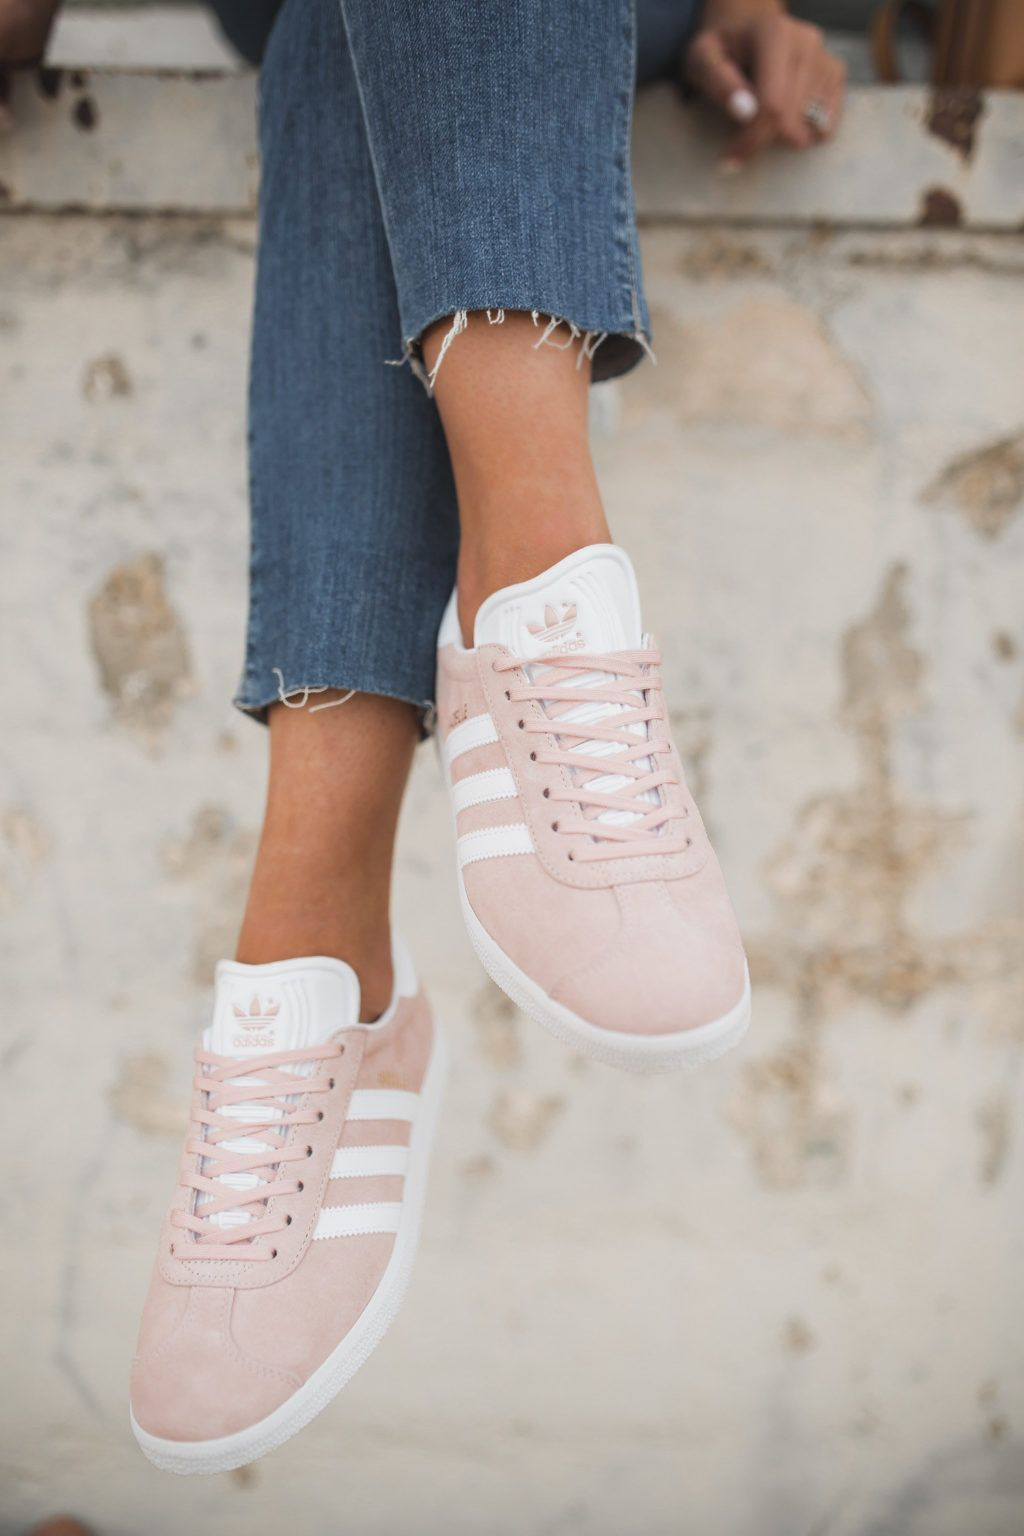 6d773170edfa How I Style my Adidas Gazelle Sneakers   The Teacher Diva  a Dallas Fashion  Blog featuring Beauty   Lifestyle